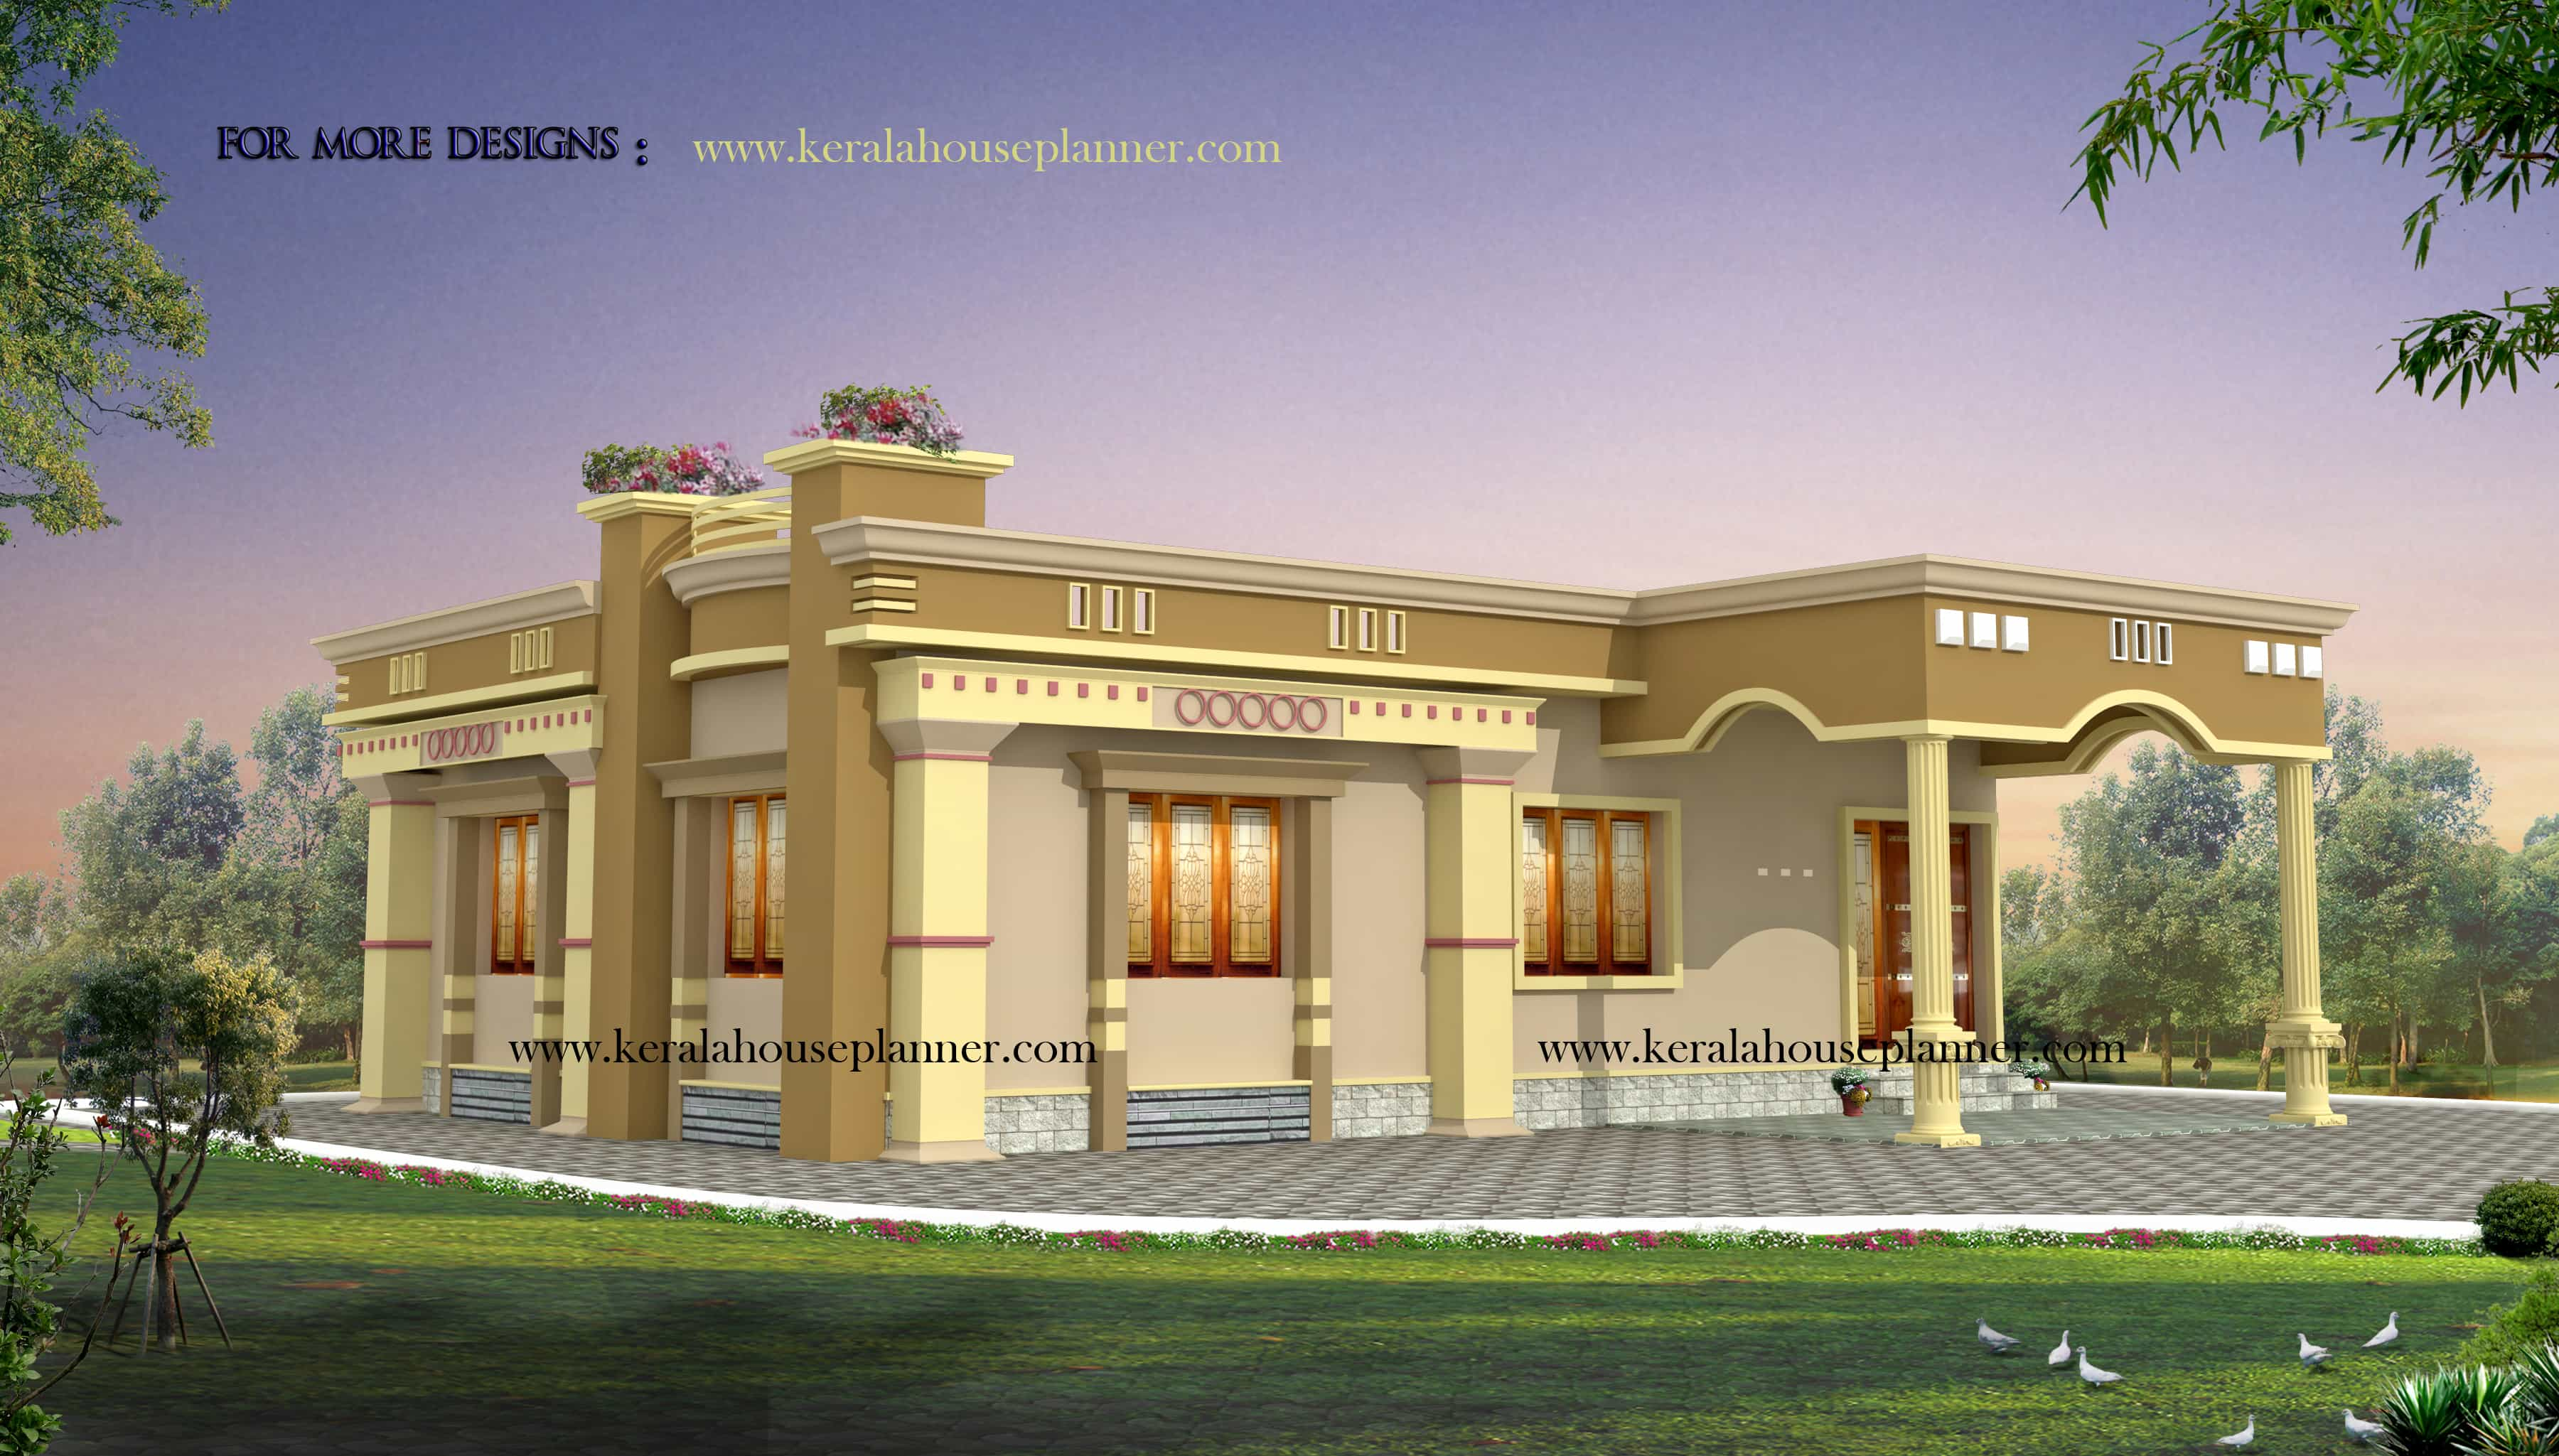 Kerala house plans 1200 sq ft with photos khp for Home building design